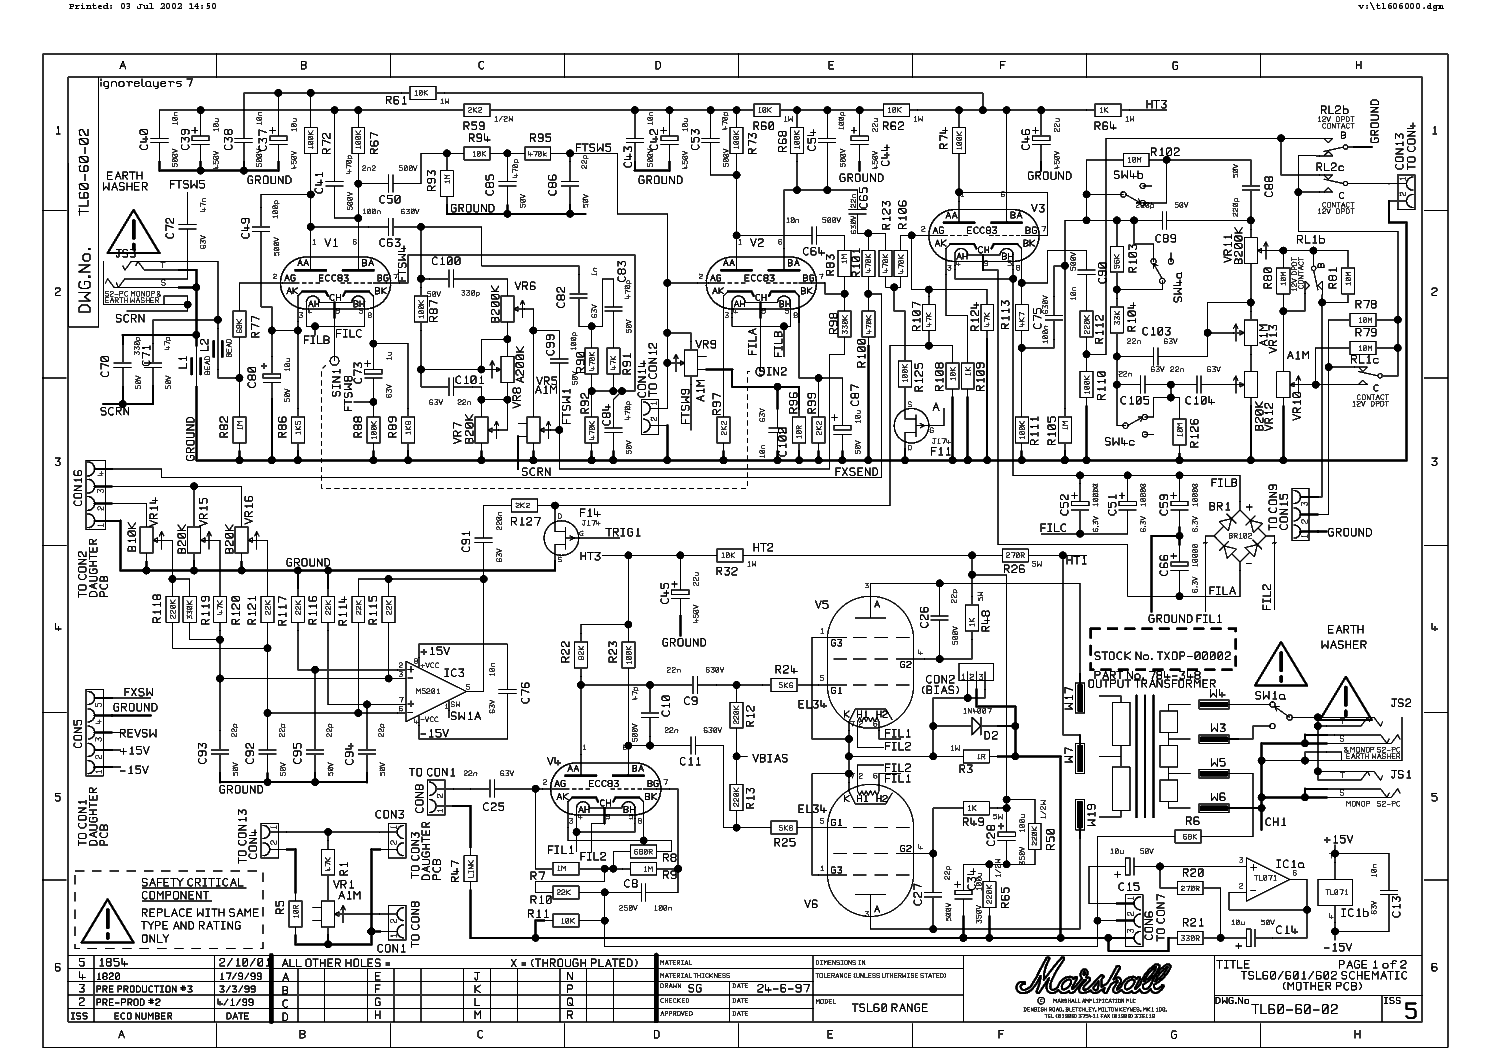 marshall jcm 2000 reverb schematic marshall free engine image for user manual